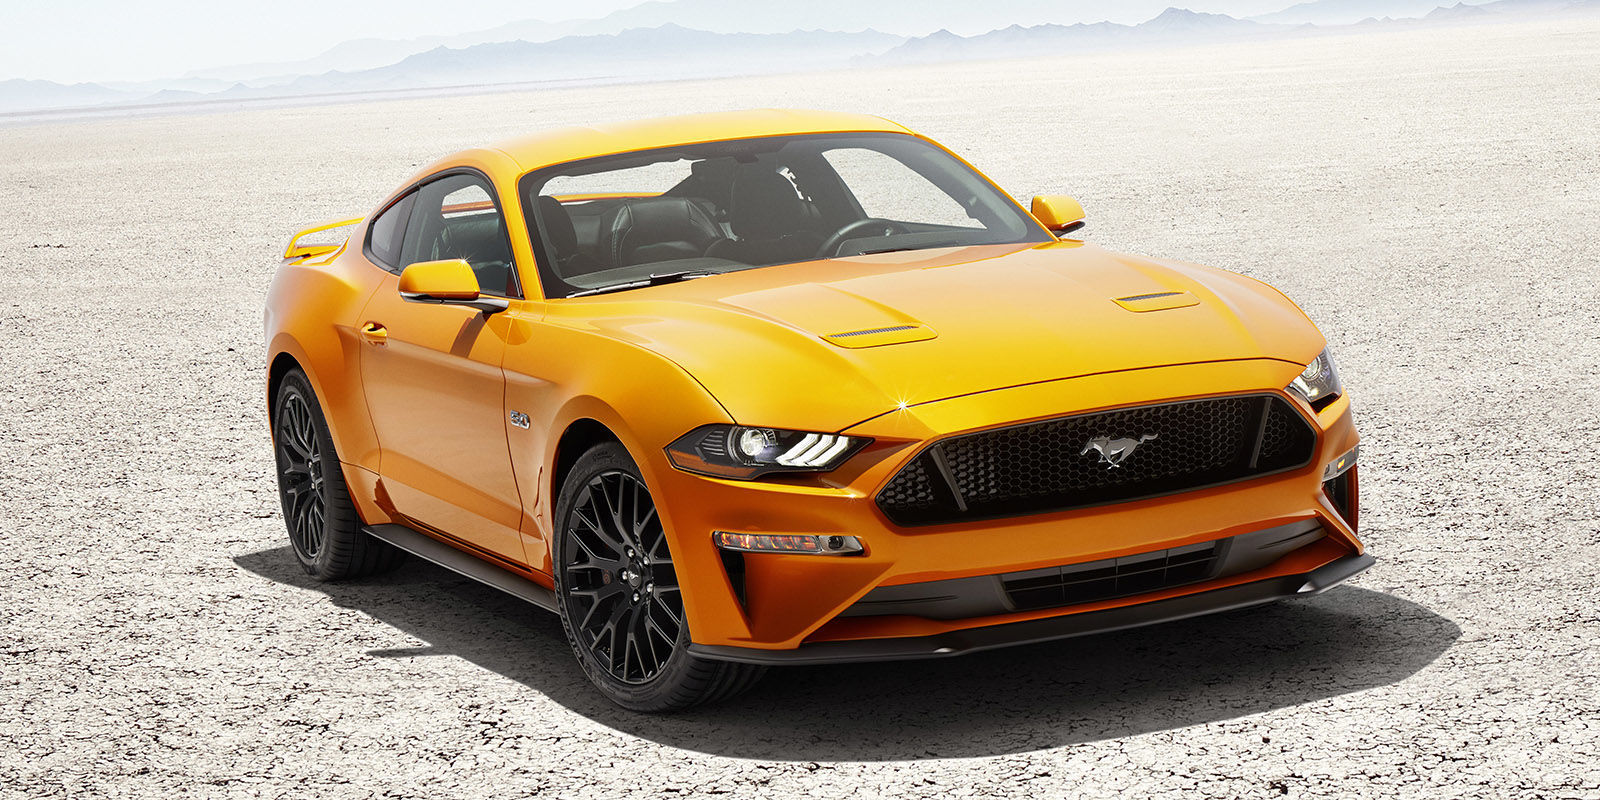 2018 Ford Mustang GT Horsepower – Does the New V8 Mustang Have 455 hp?